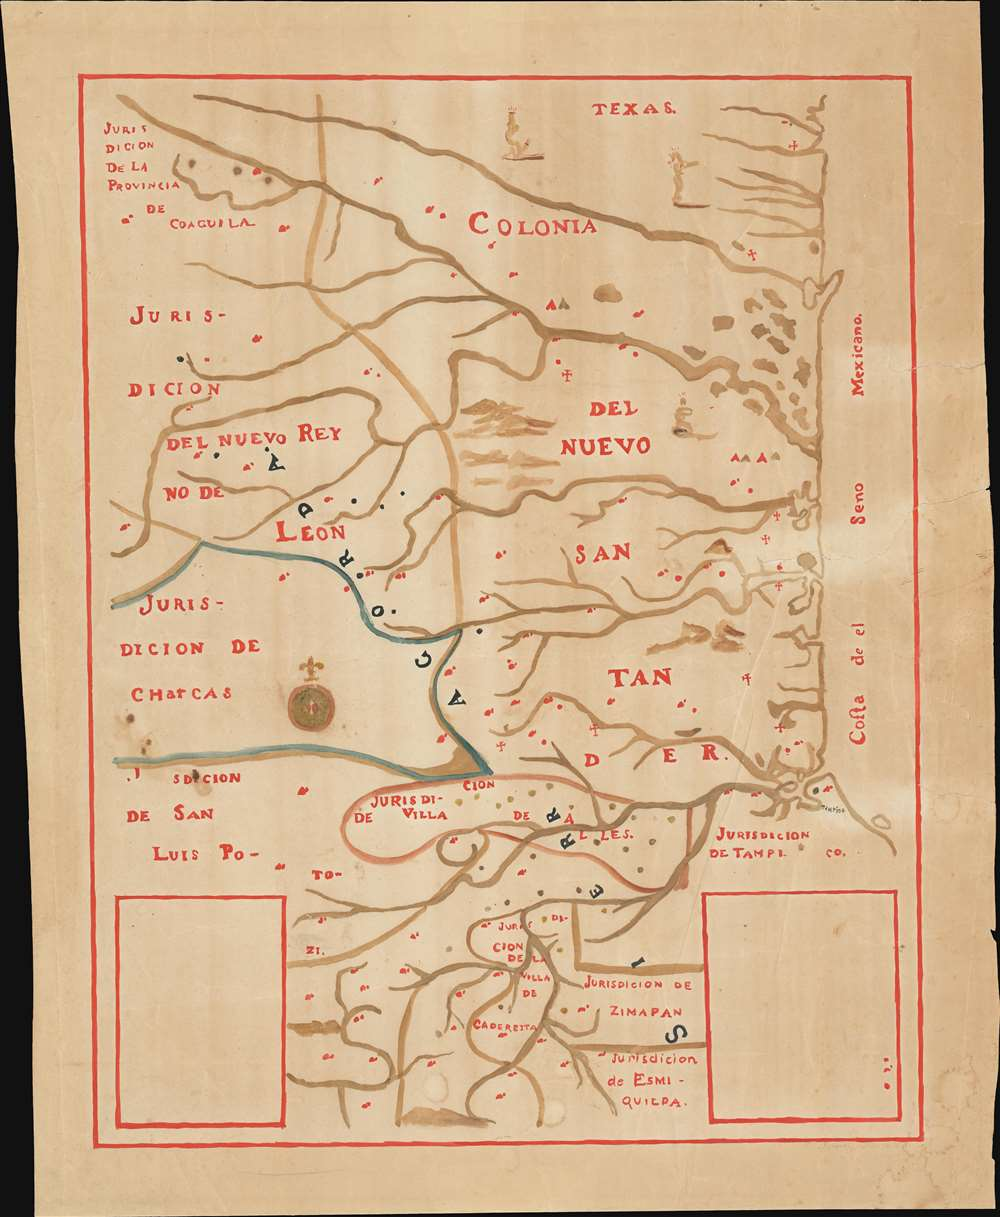 1929 Manuscript  Draft for a Lithograph of an 18th Century Manuscript Map of Nuevo Santander, Mexico